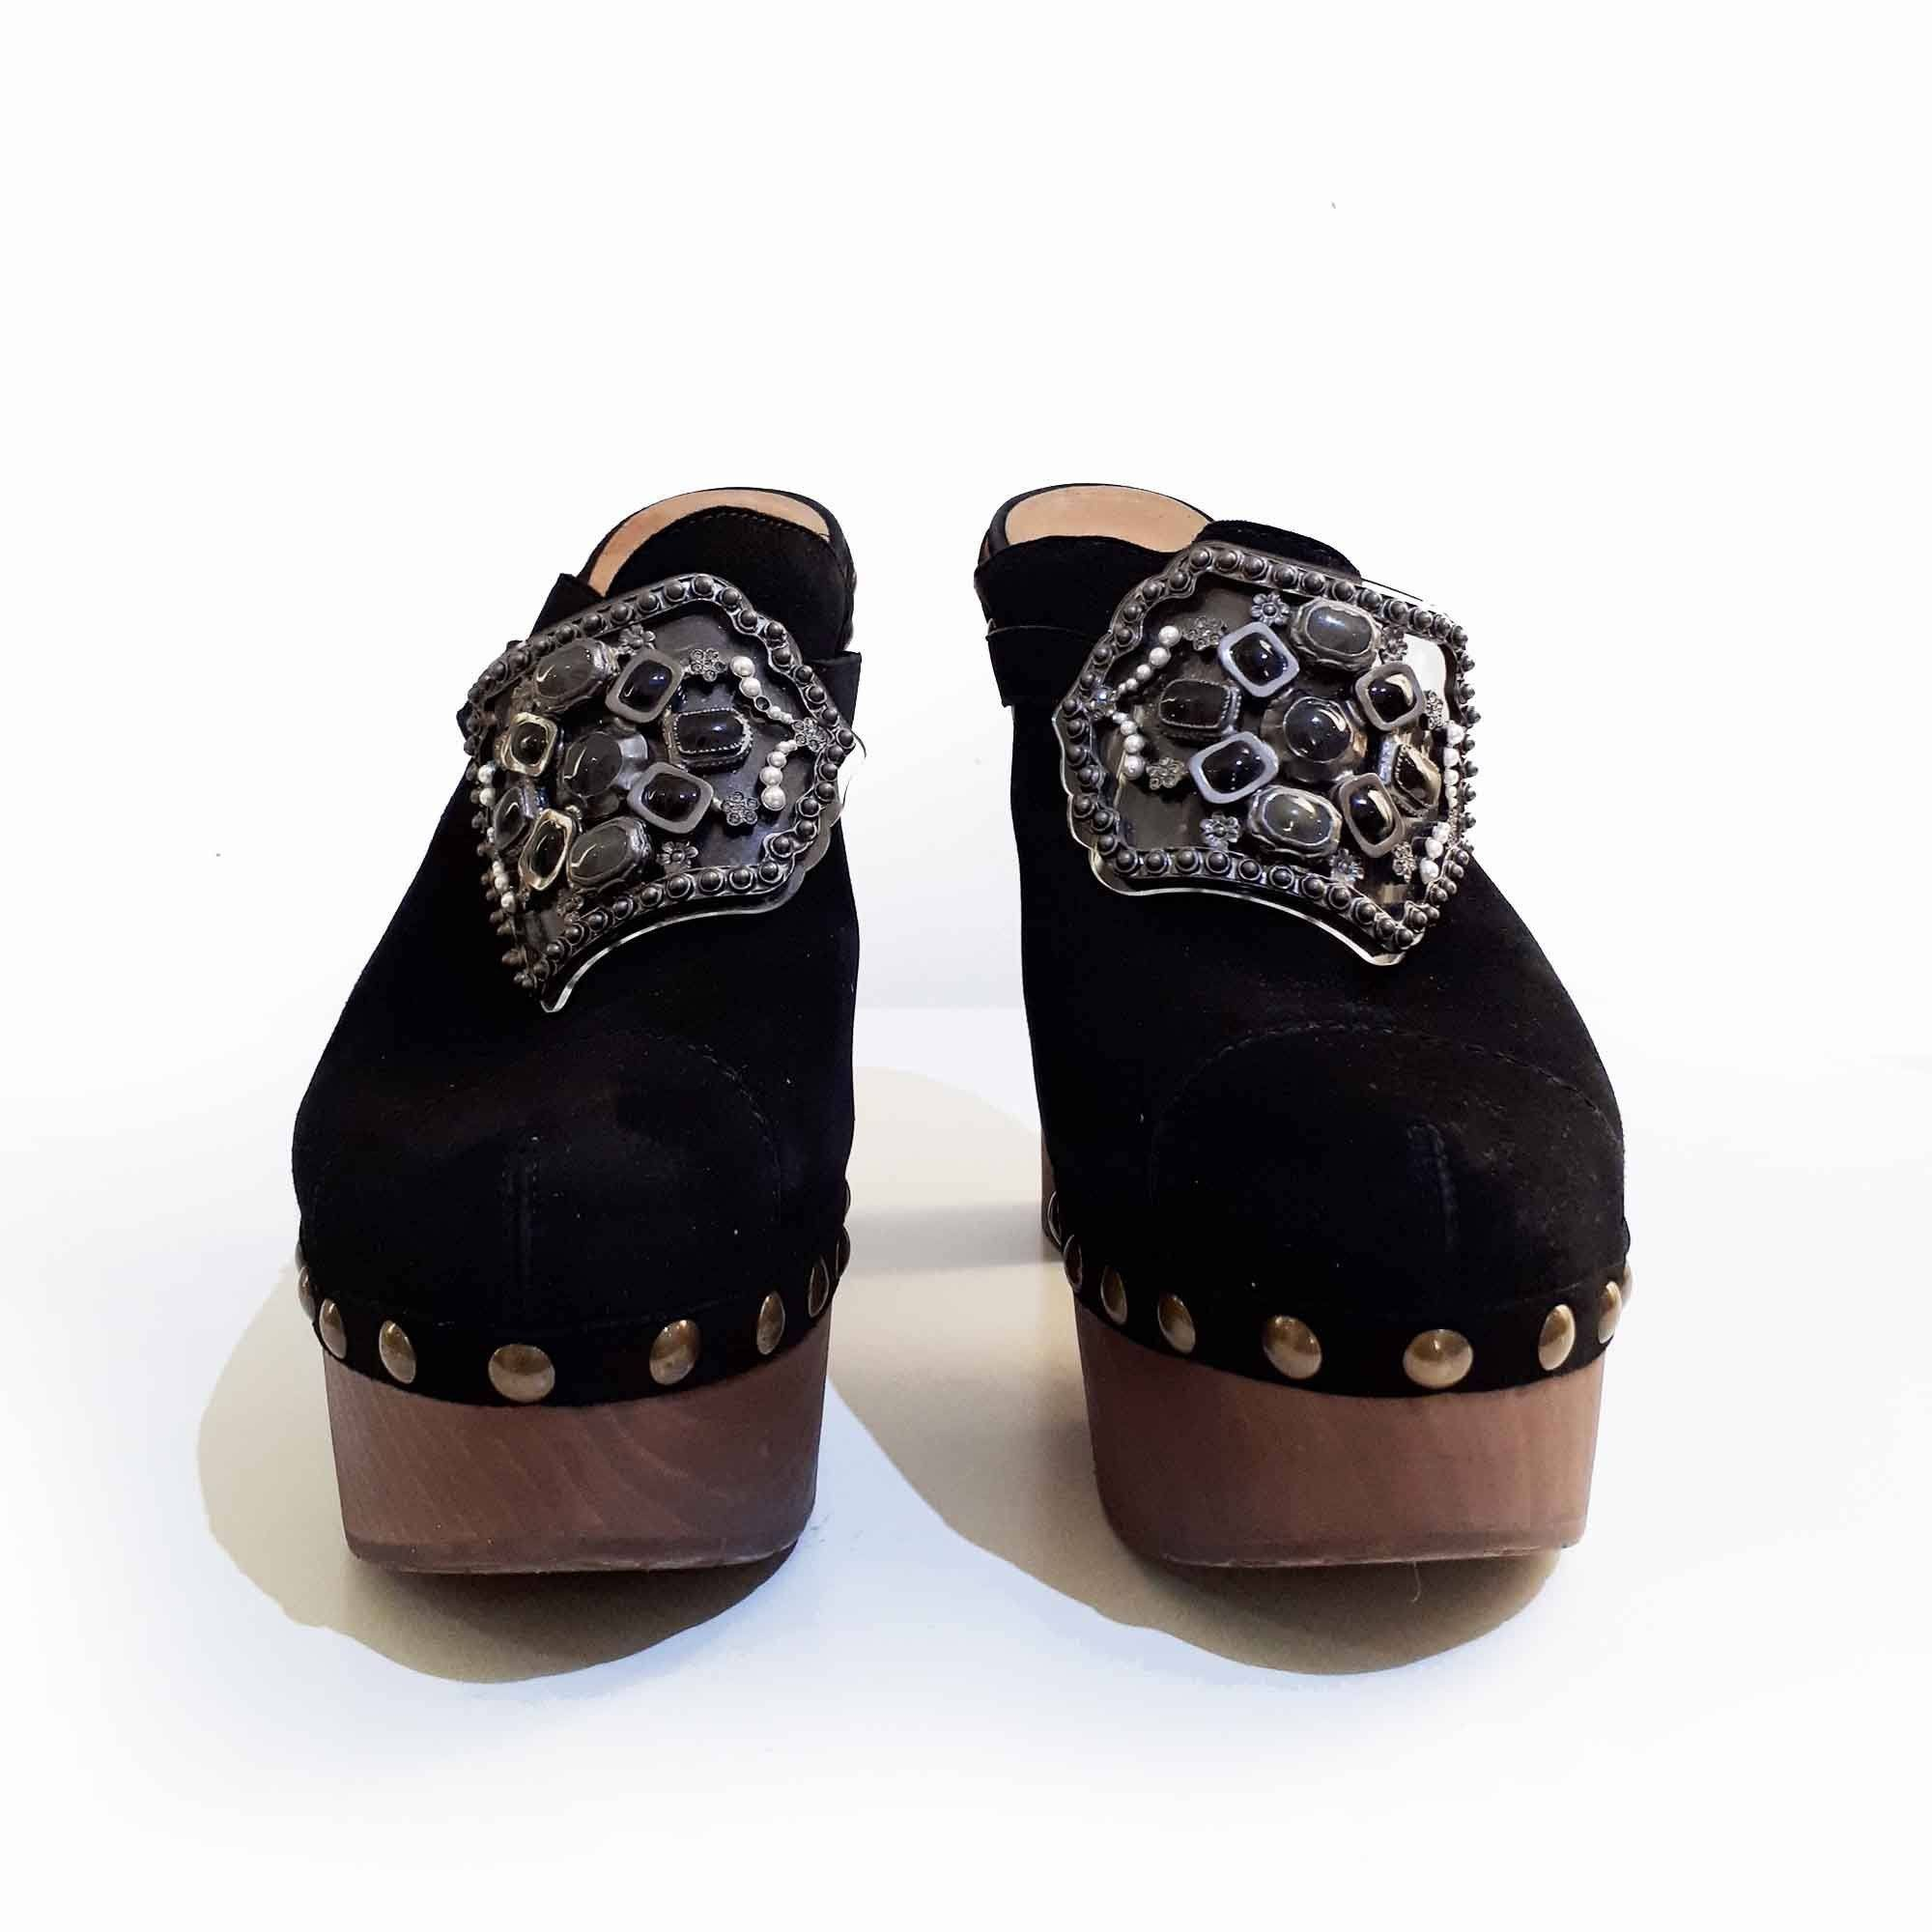 Chanel Embellished Buckle Clogs